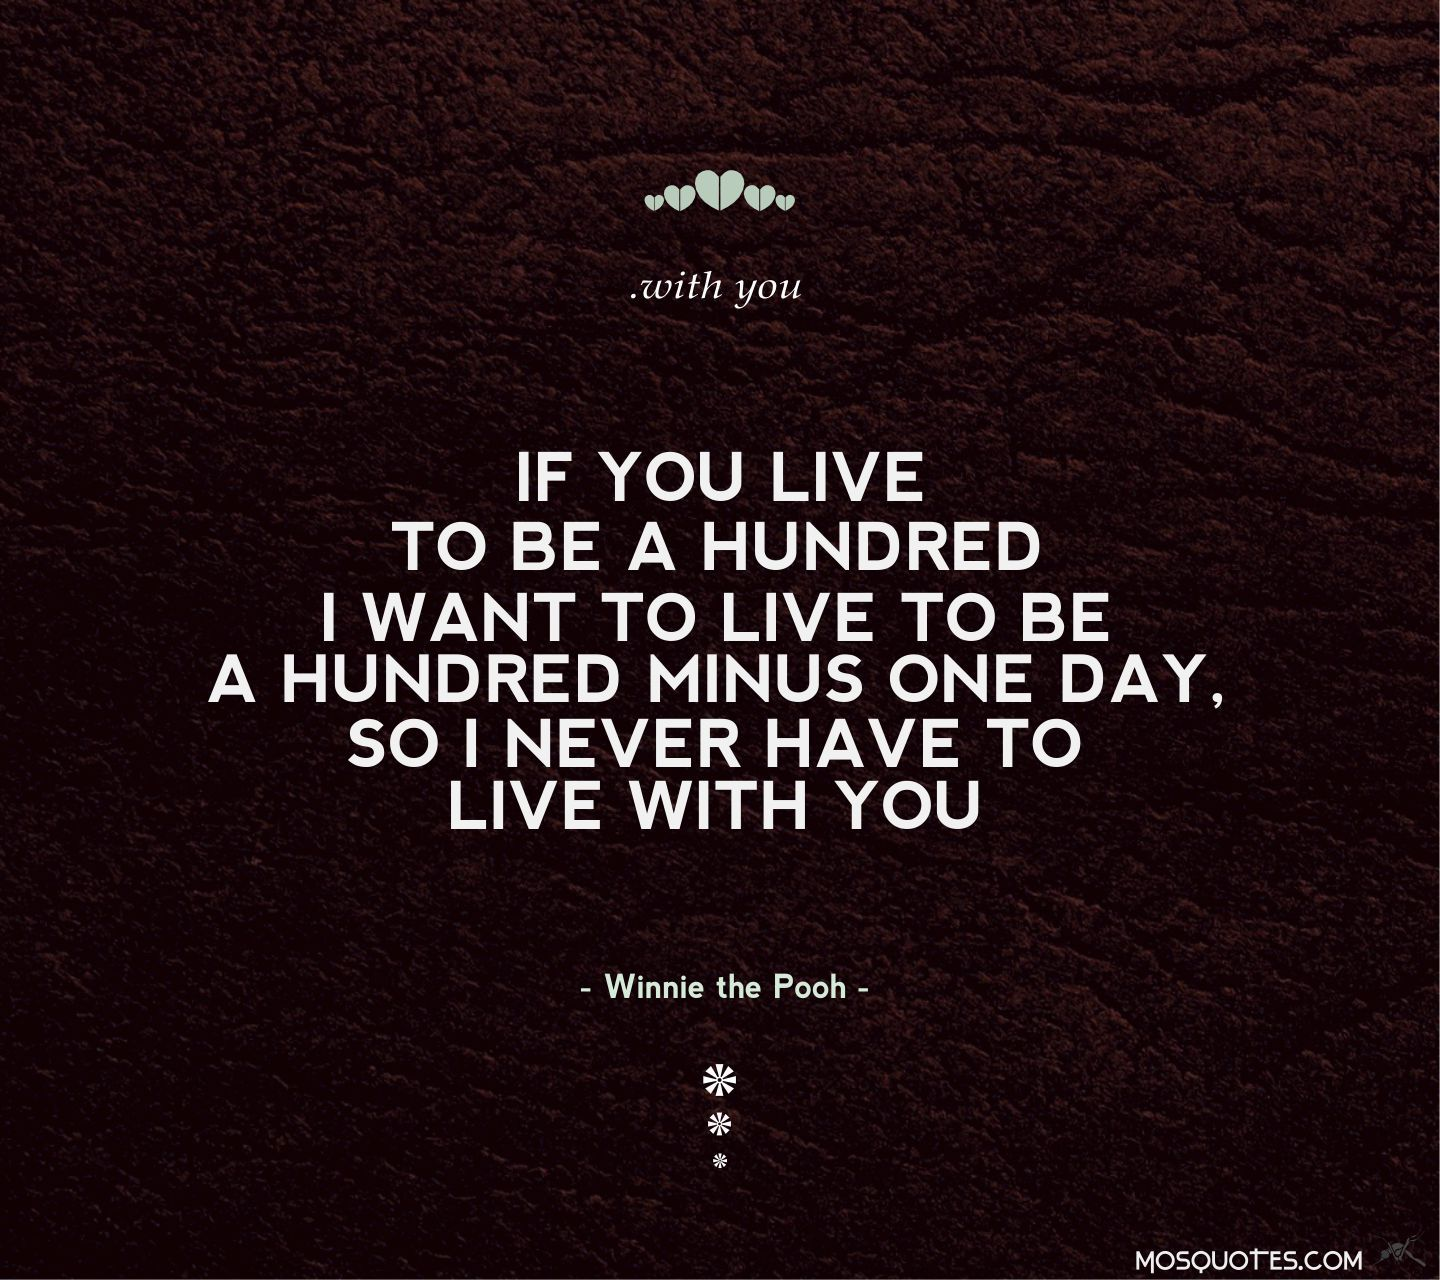 Cute Love Quotes If you live to be a hundred I want to